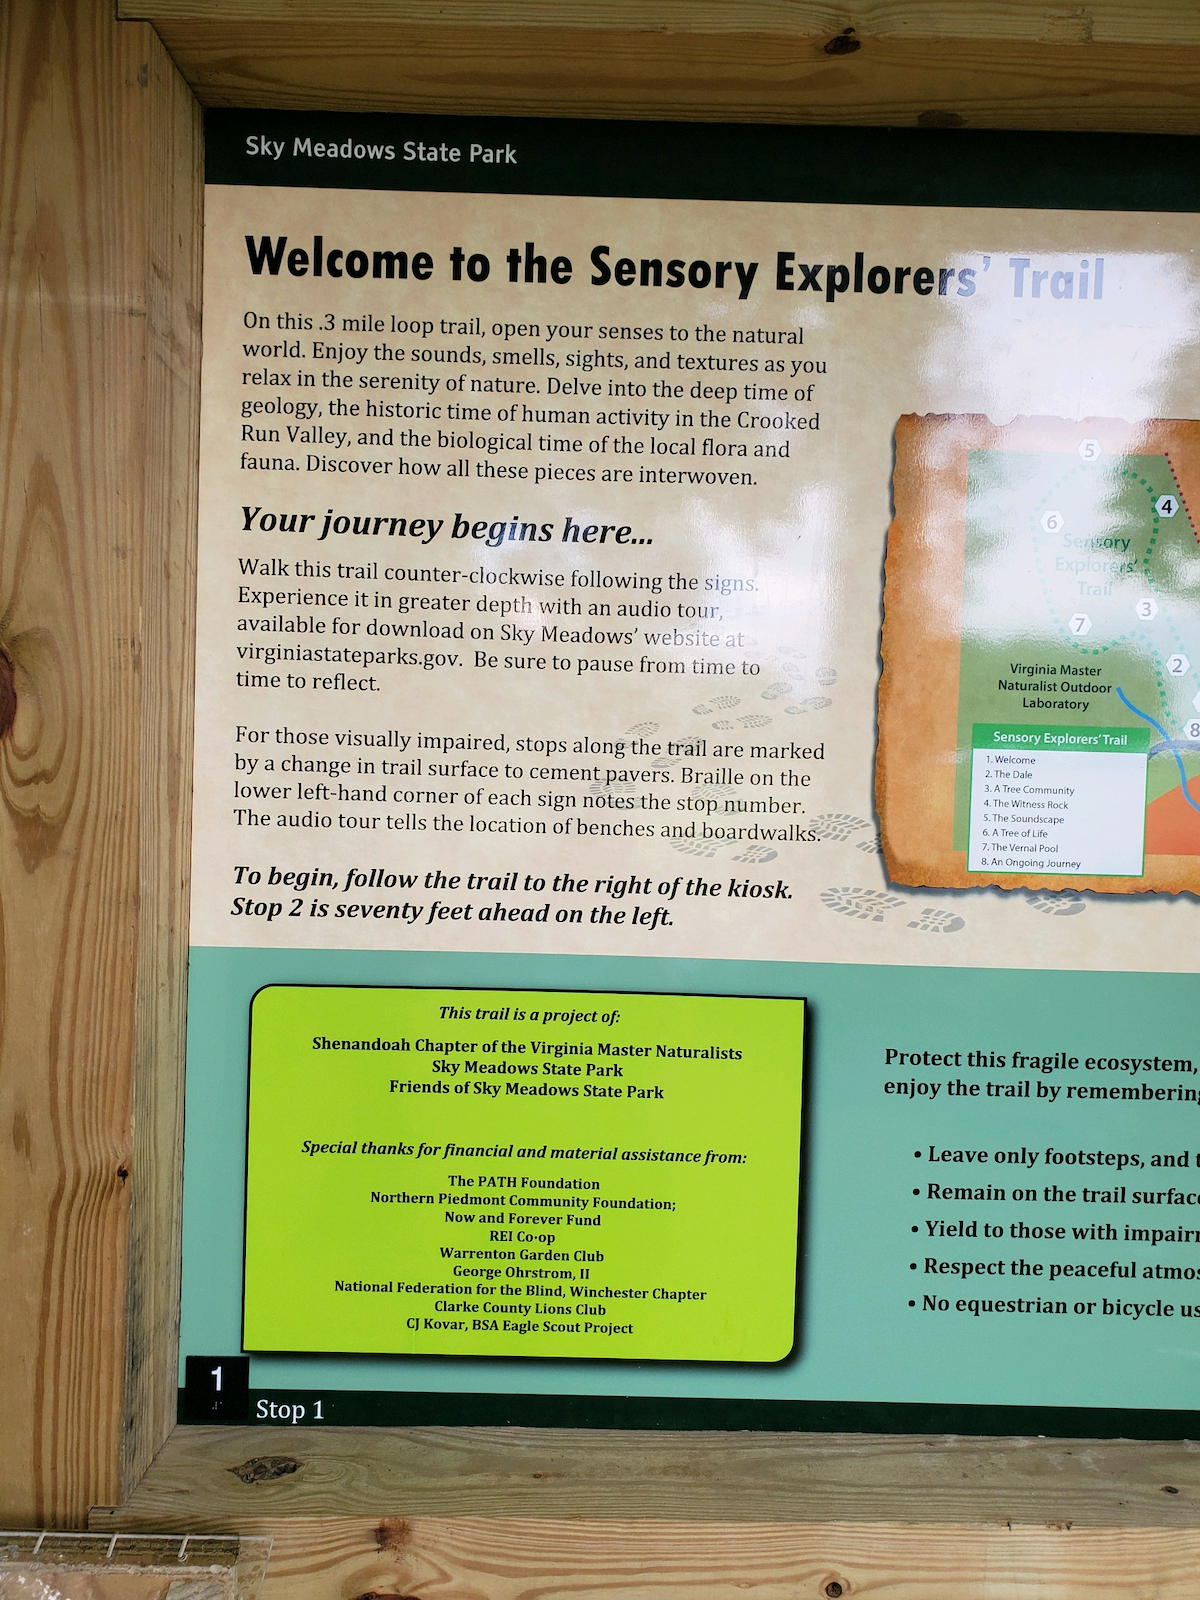 Sign stating Welcome to the sensory explorers trail. Enjoy the sounds, sights, and textures as you relax in the serenity of nature.